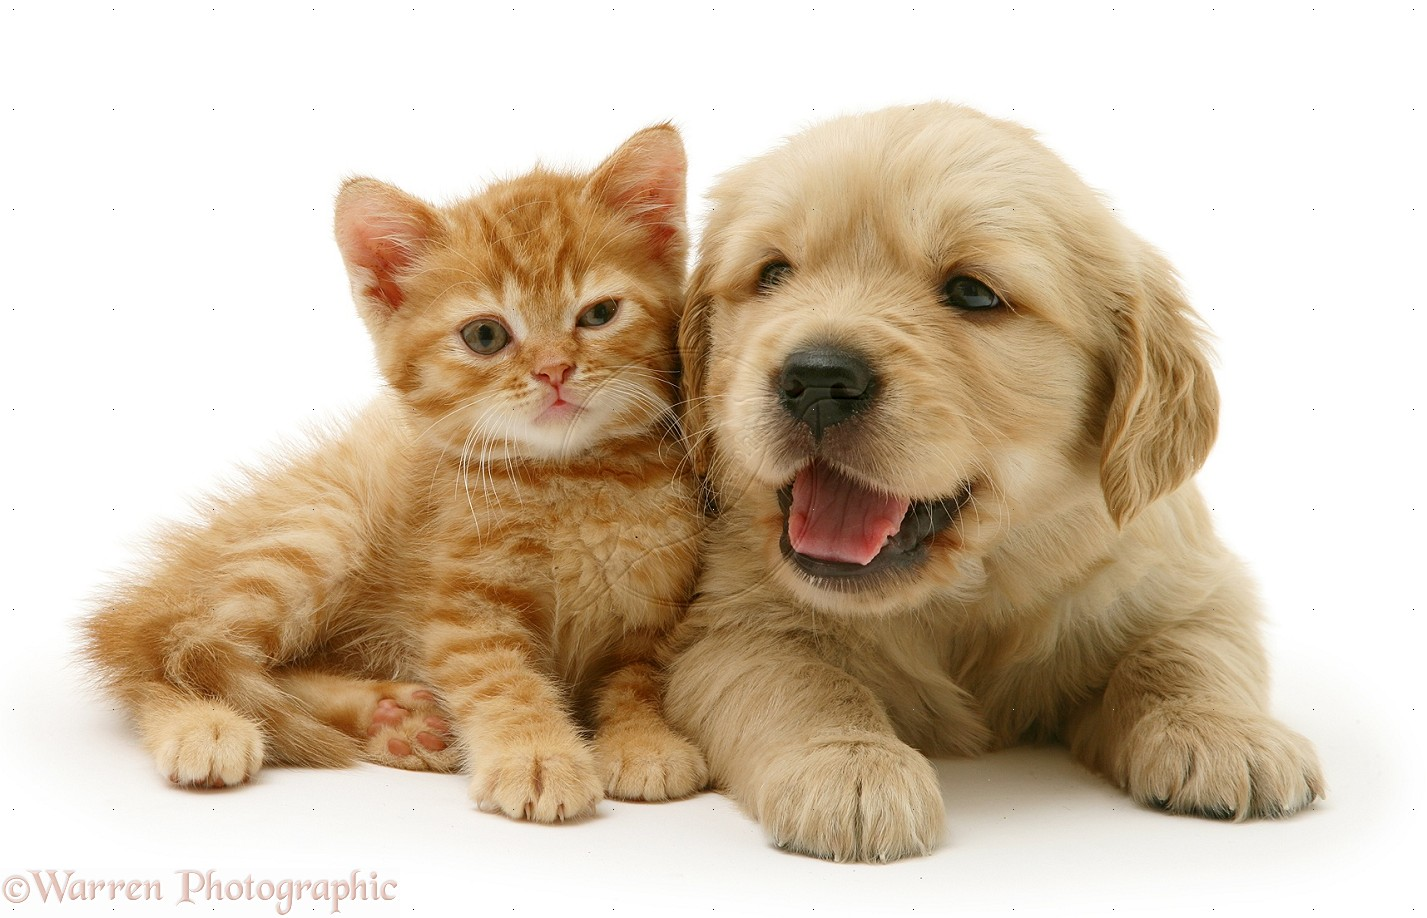 1427x918 - Cute Puppy and Kitten 24